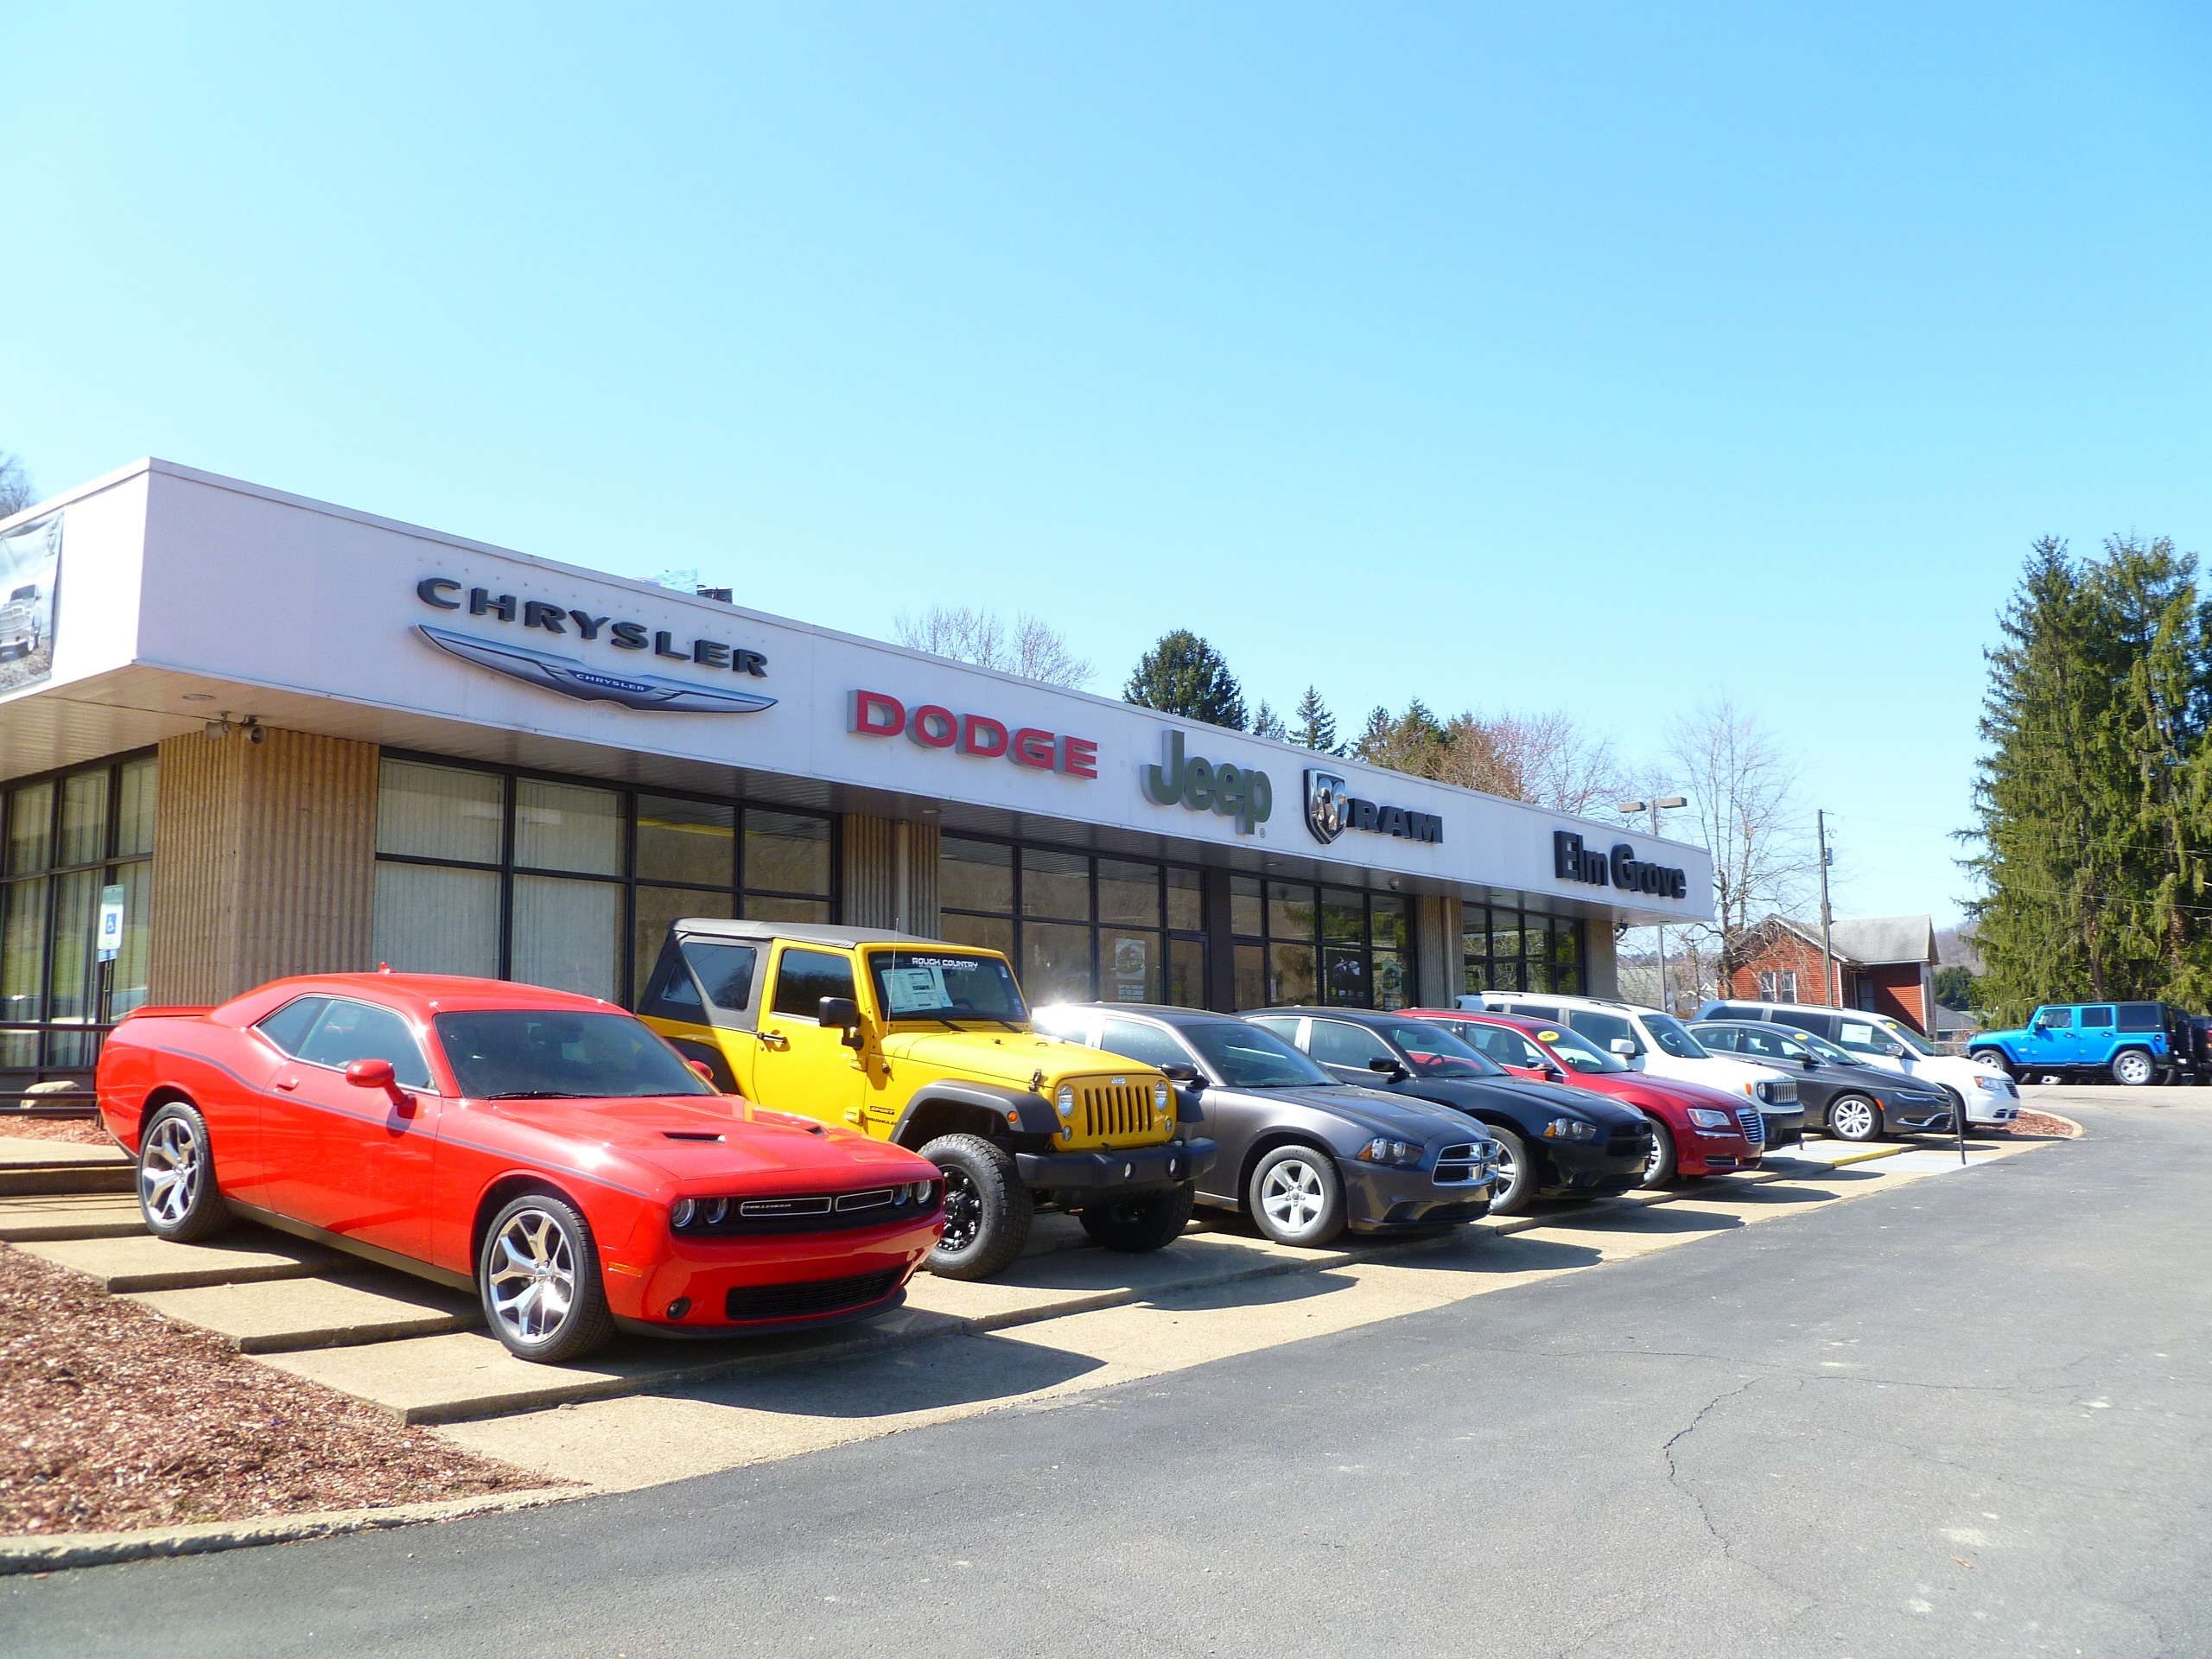 Elm Grove Dodge >> Elm Grove Dodge Chrysler Jeep Ram Used Cars For Sale in Wheeling | Pre-Owned Vehicles Serving ...